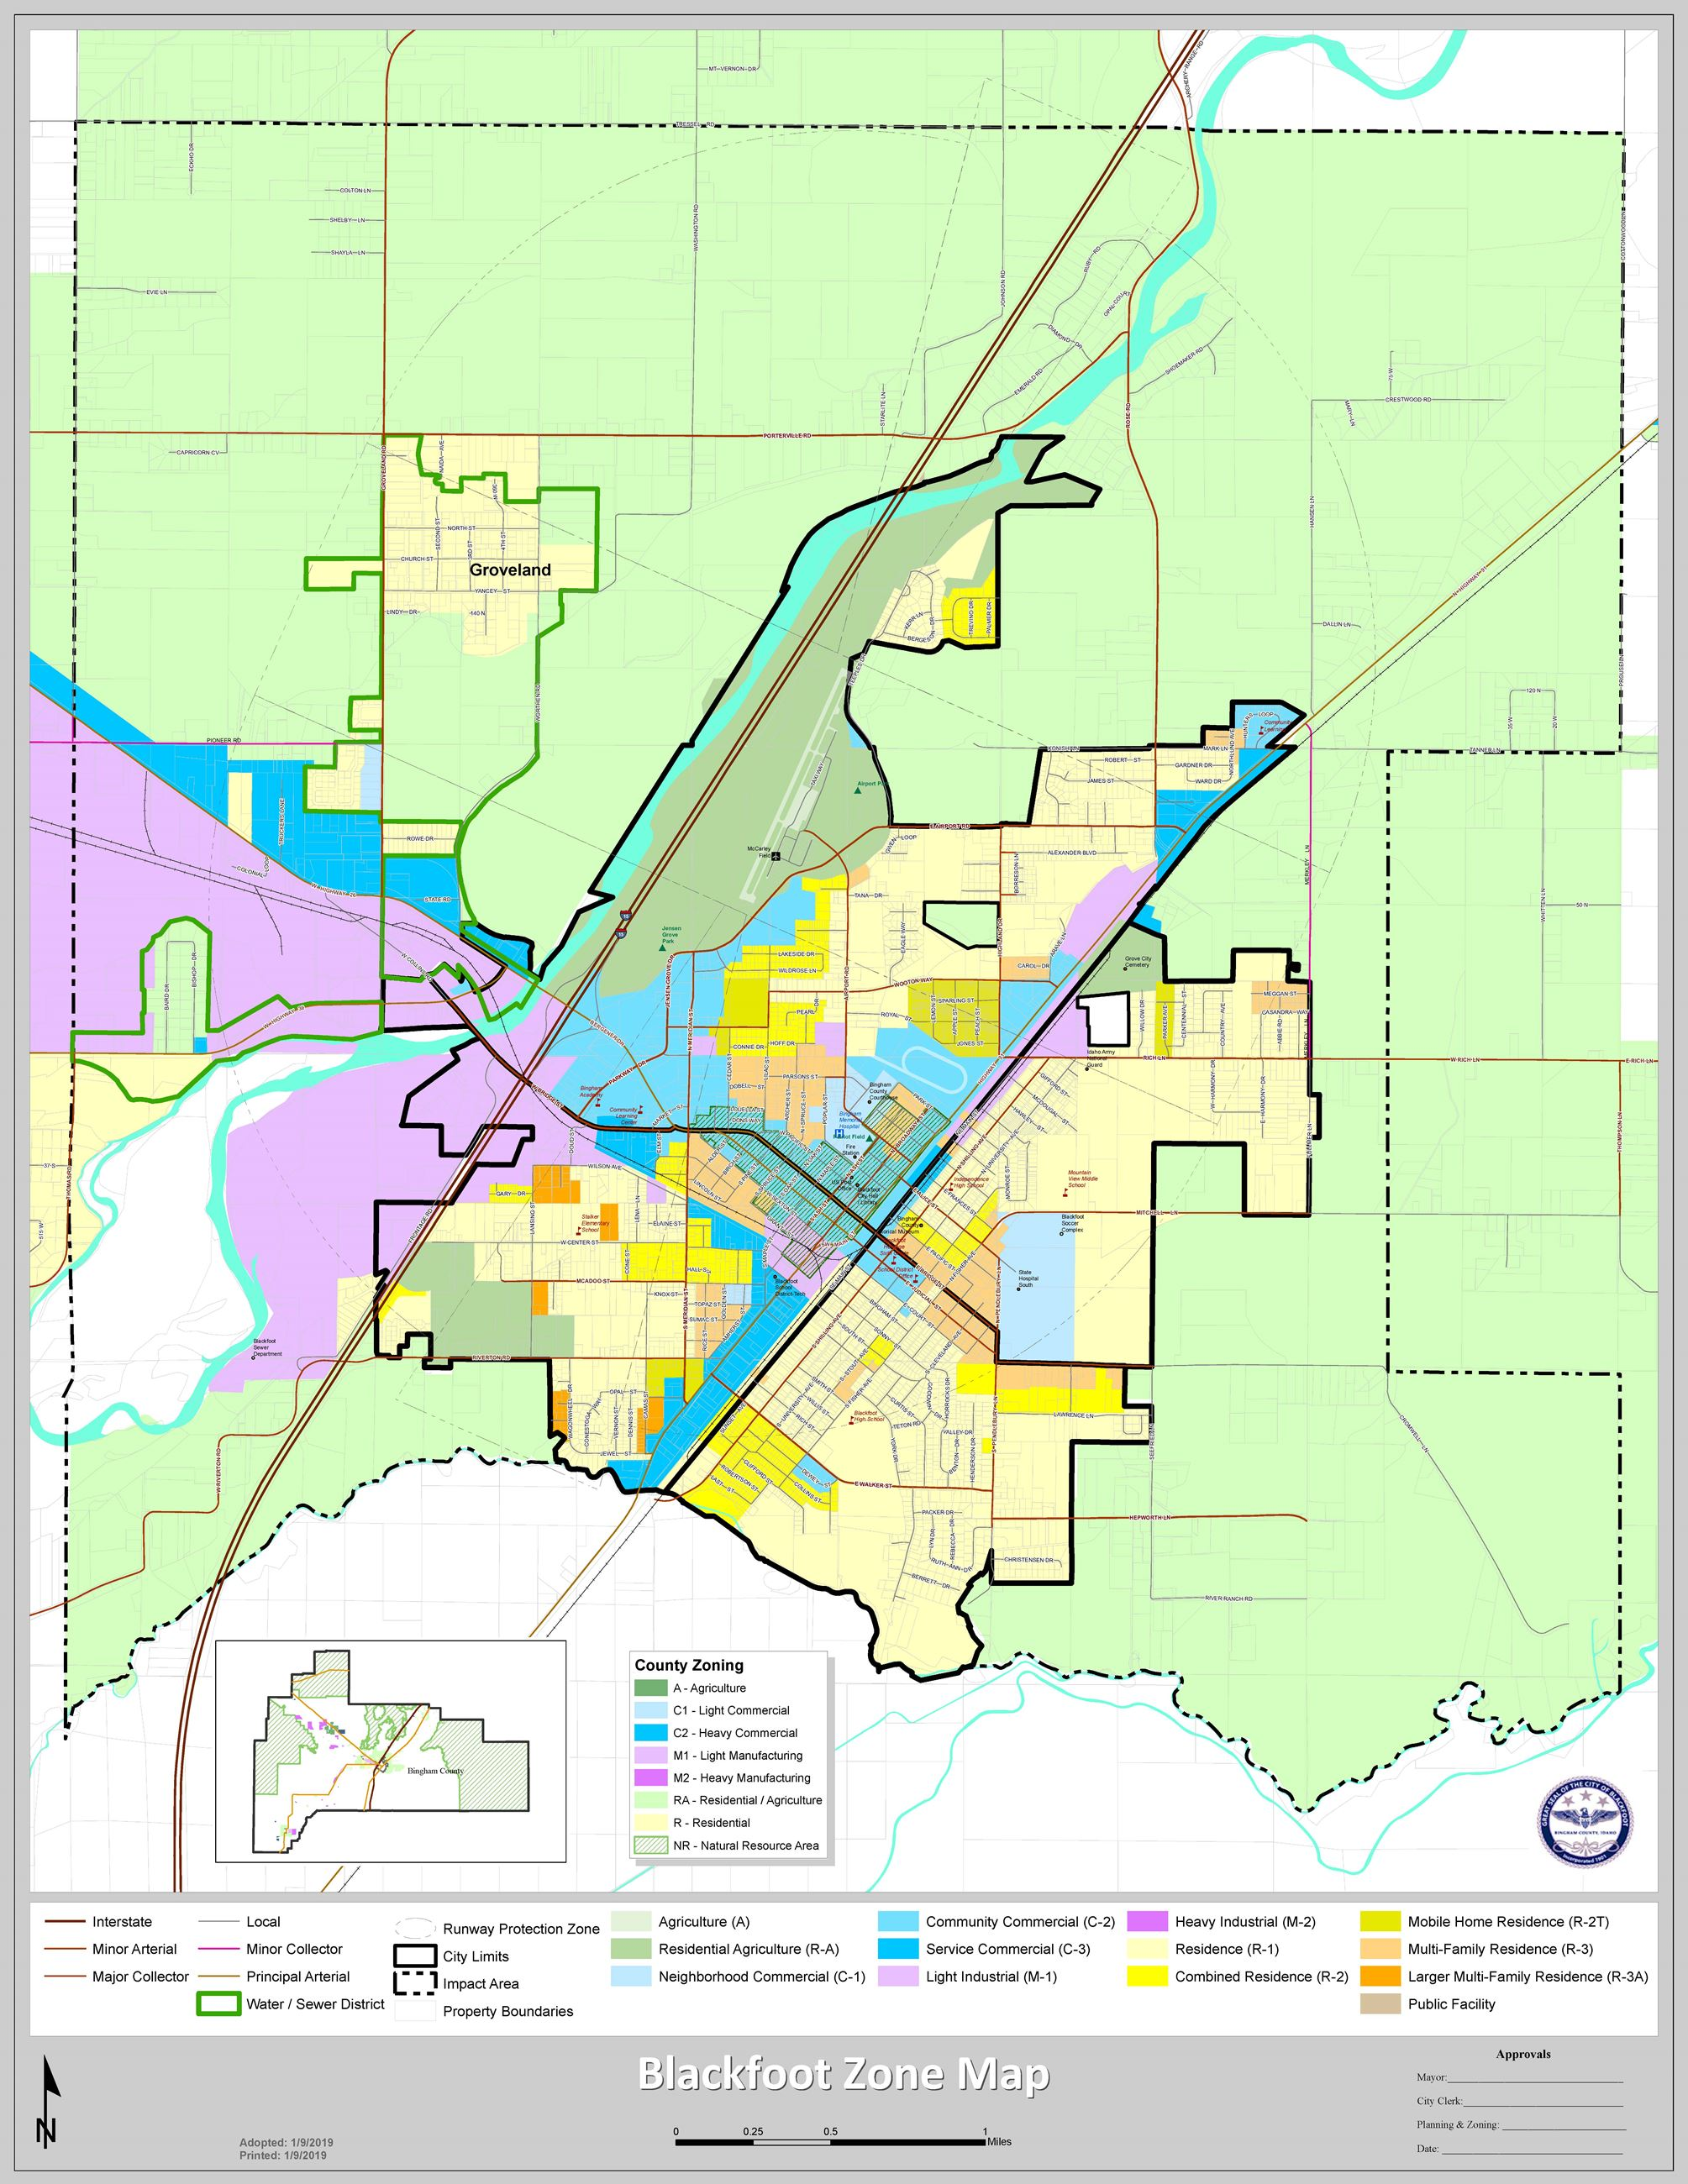 This is an image of the Zone Map for the City of Blackfoot.